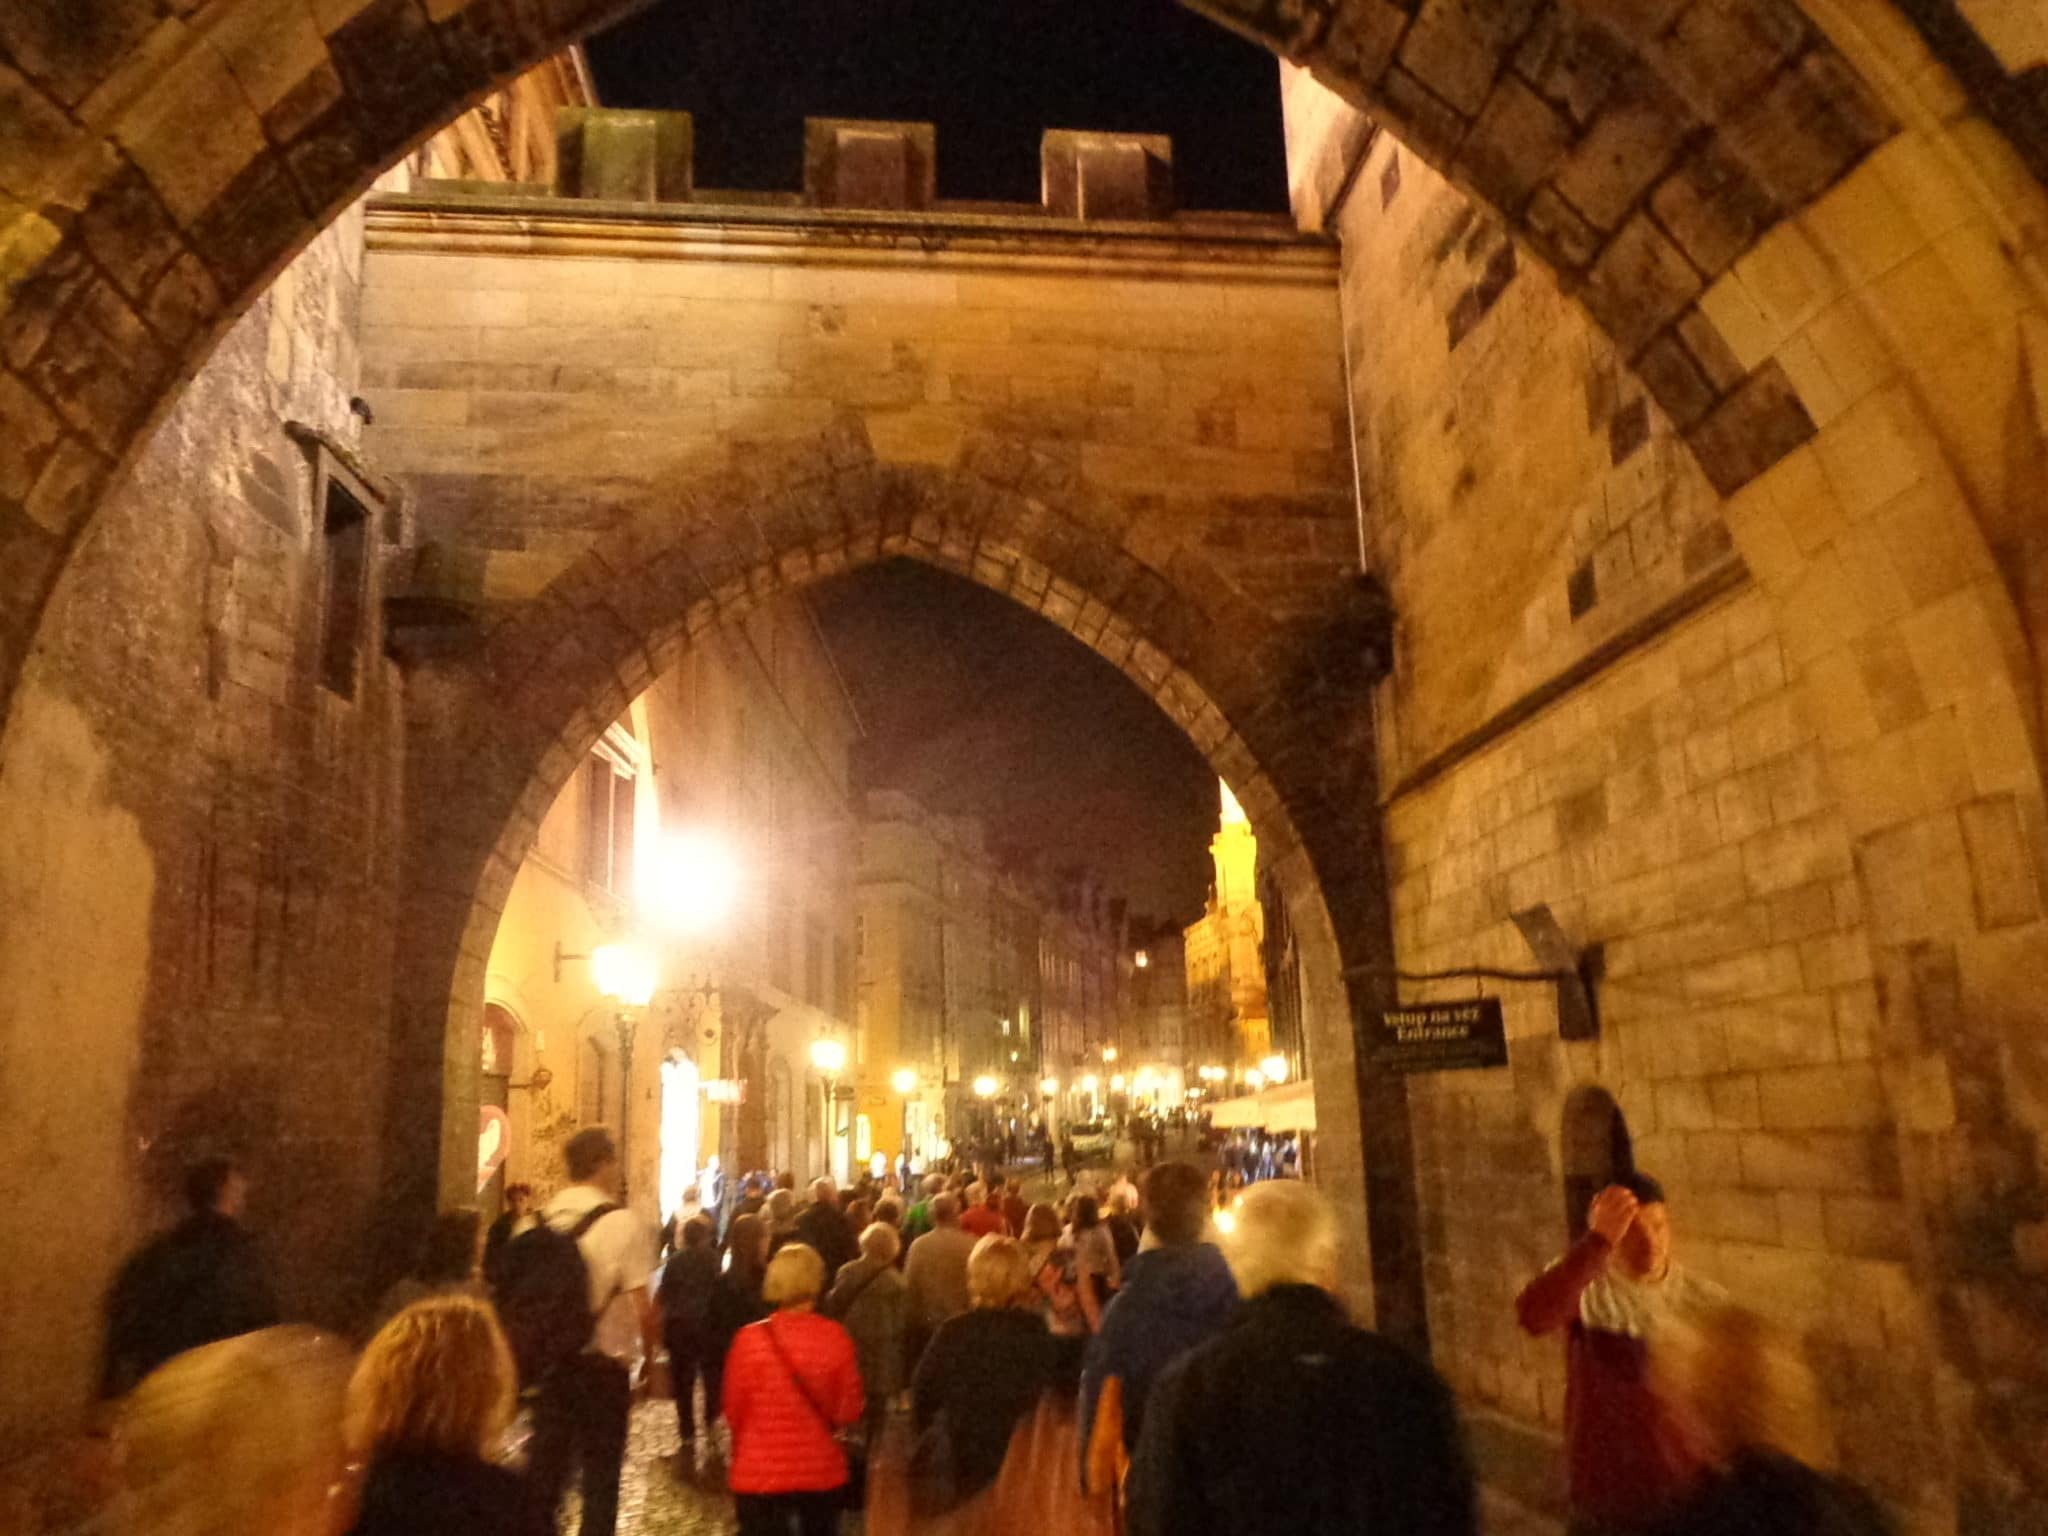 Under the Charles Brdge, Charles Bridge - Top 10 Things to See and Do in Prague